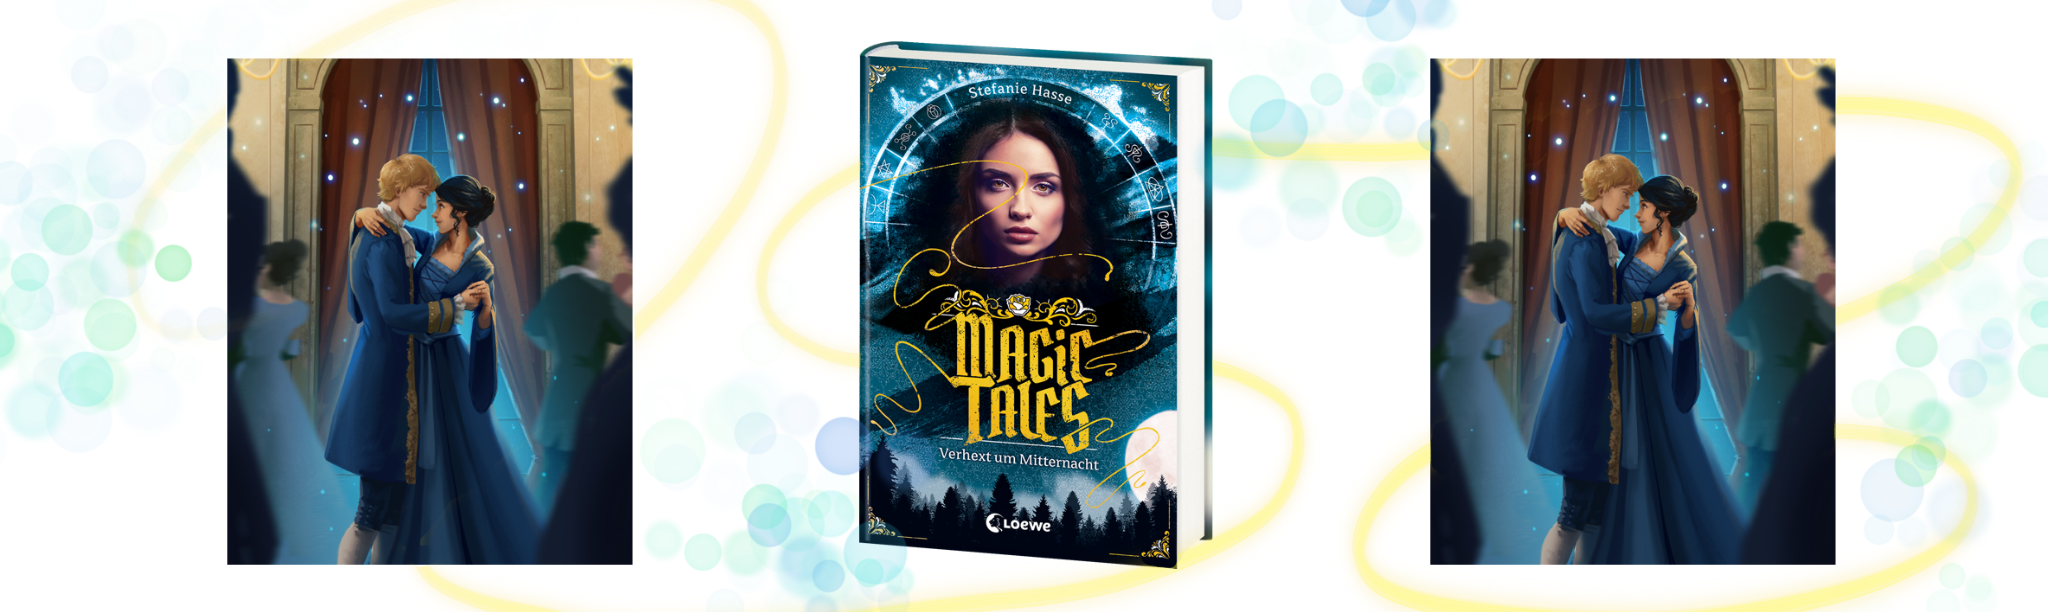 signierte Exemplare Magic Tales